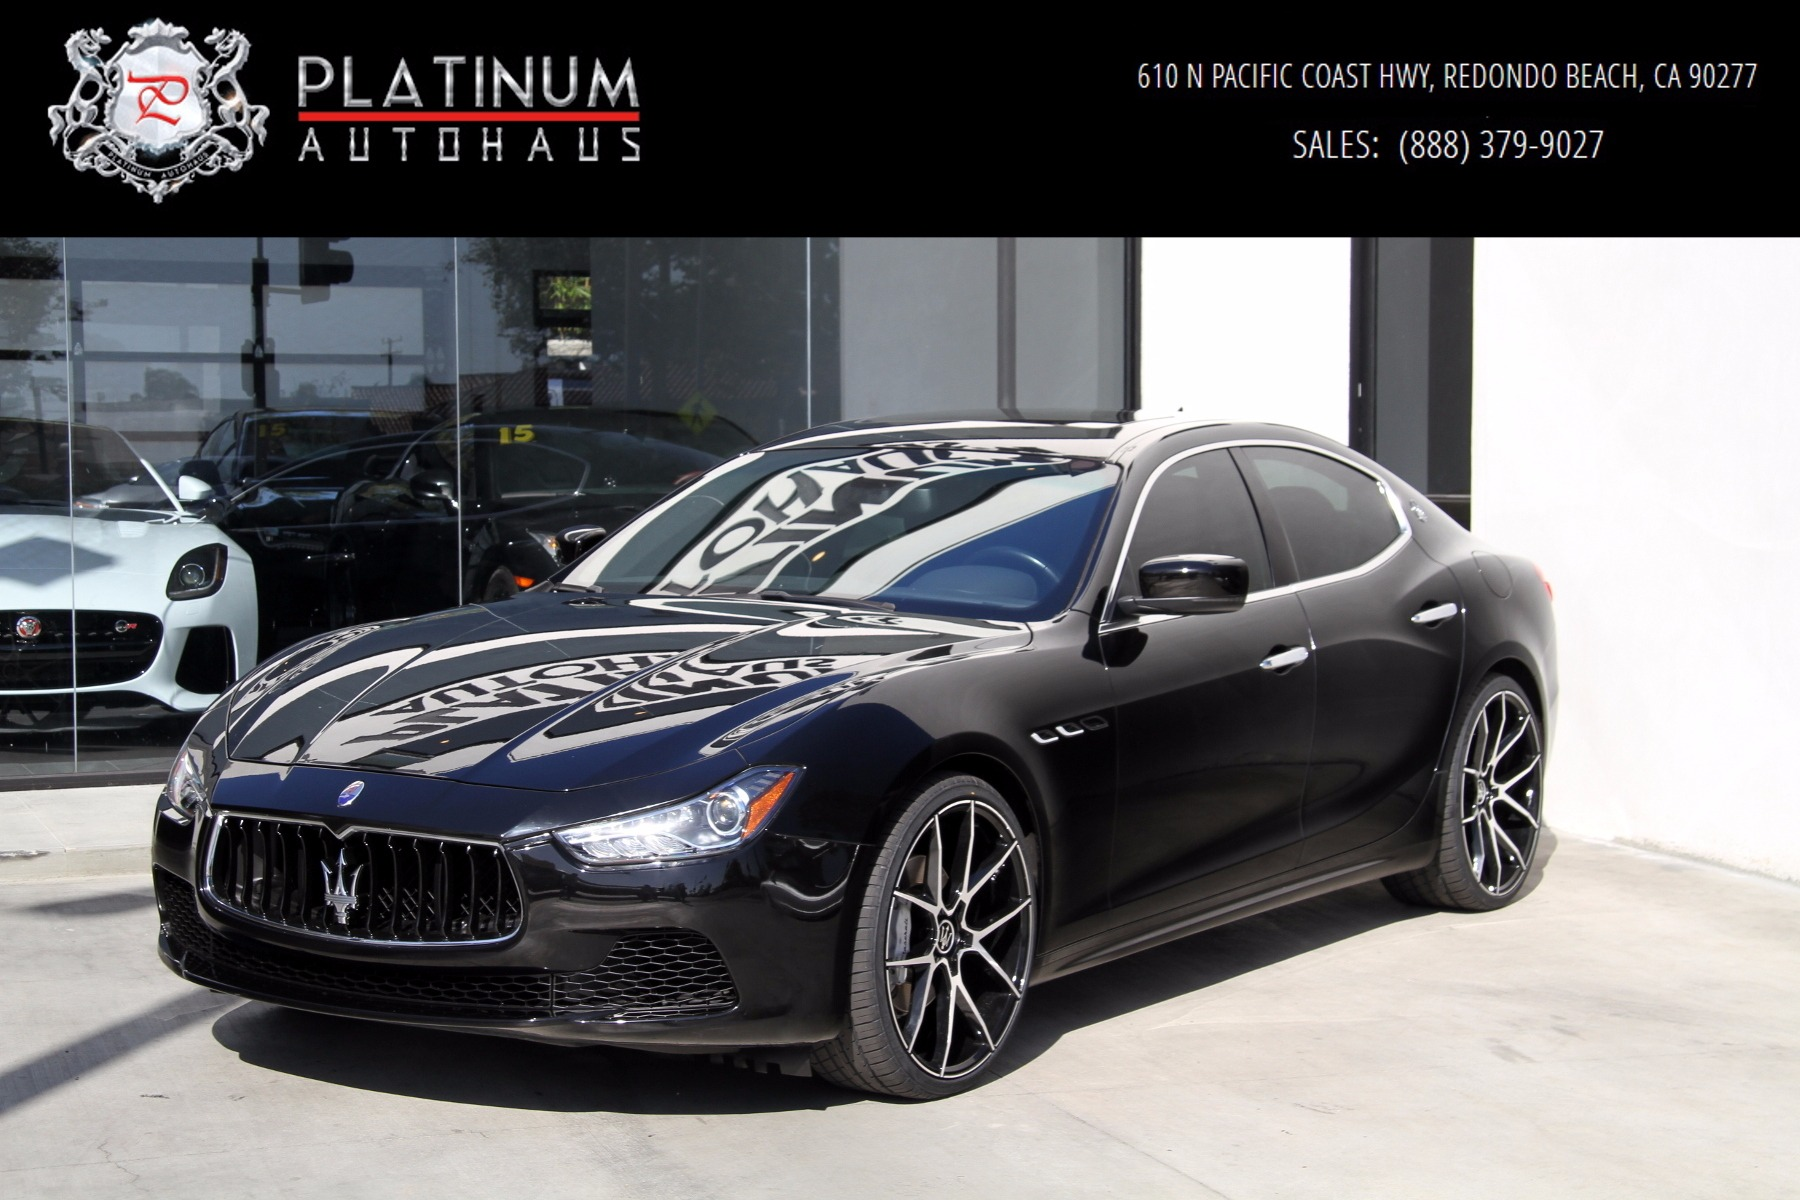 2014 maserati ghibli stock # 5996 for sale near redondo beach, ca